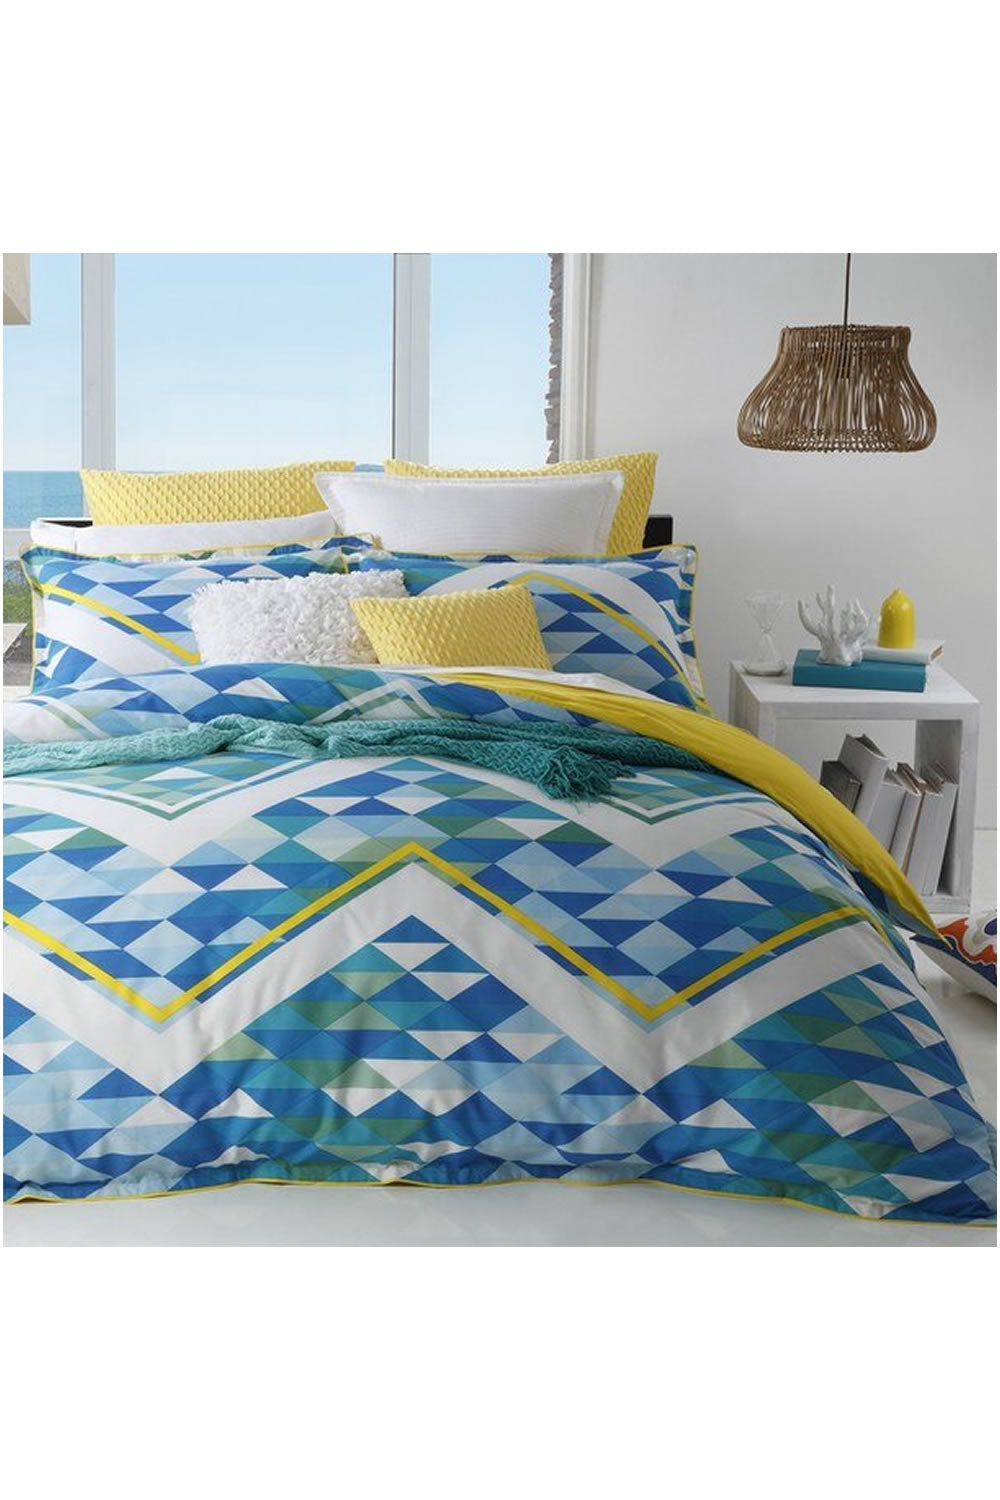 Logan and Mason Queenscliff Quilt Cover Set